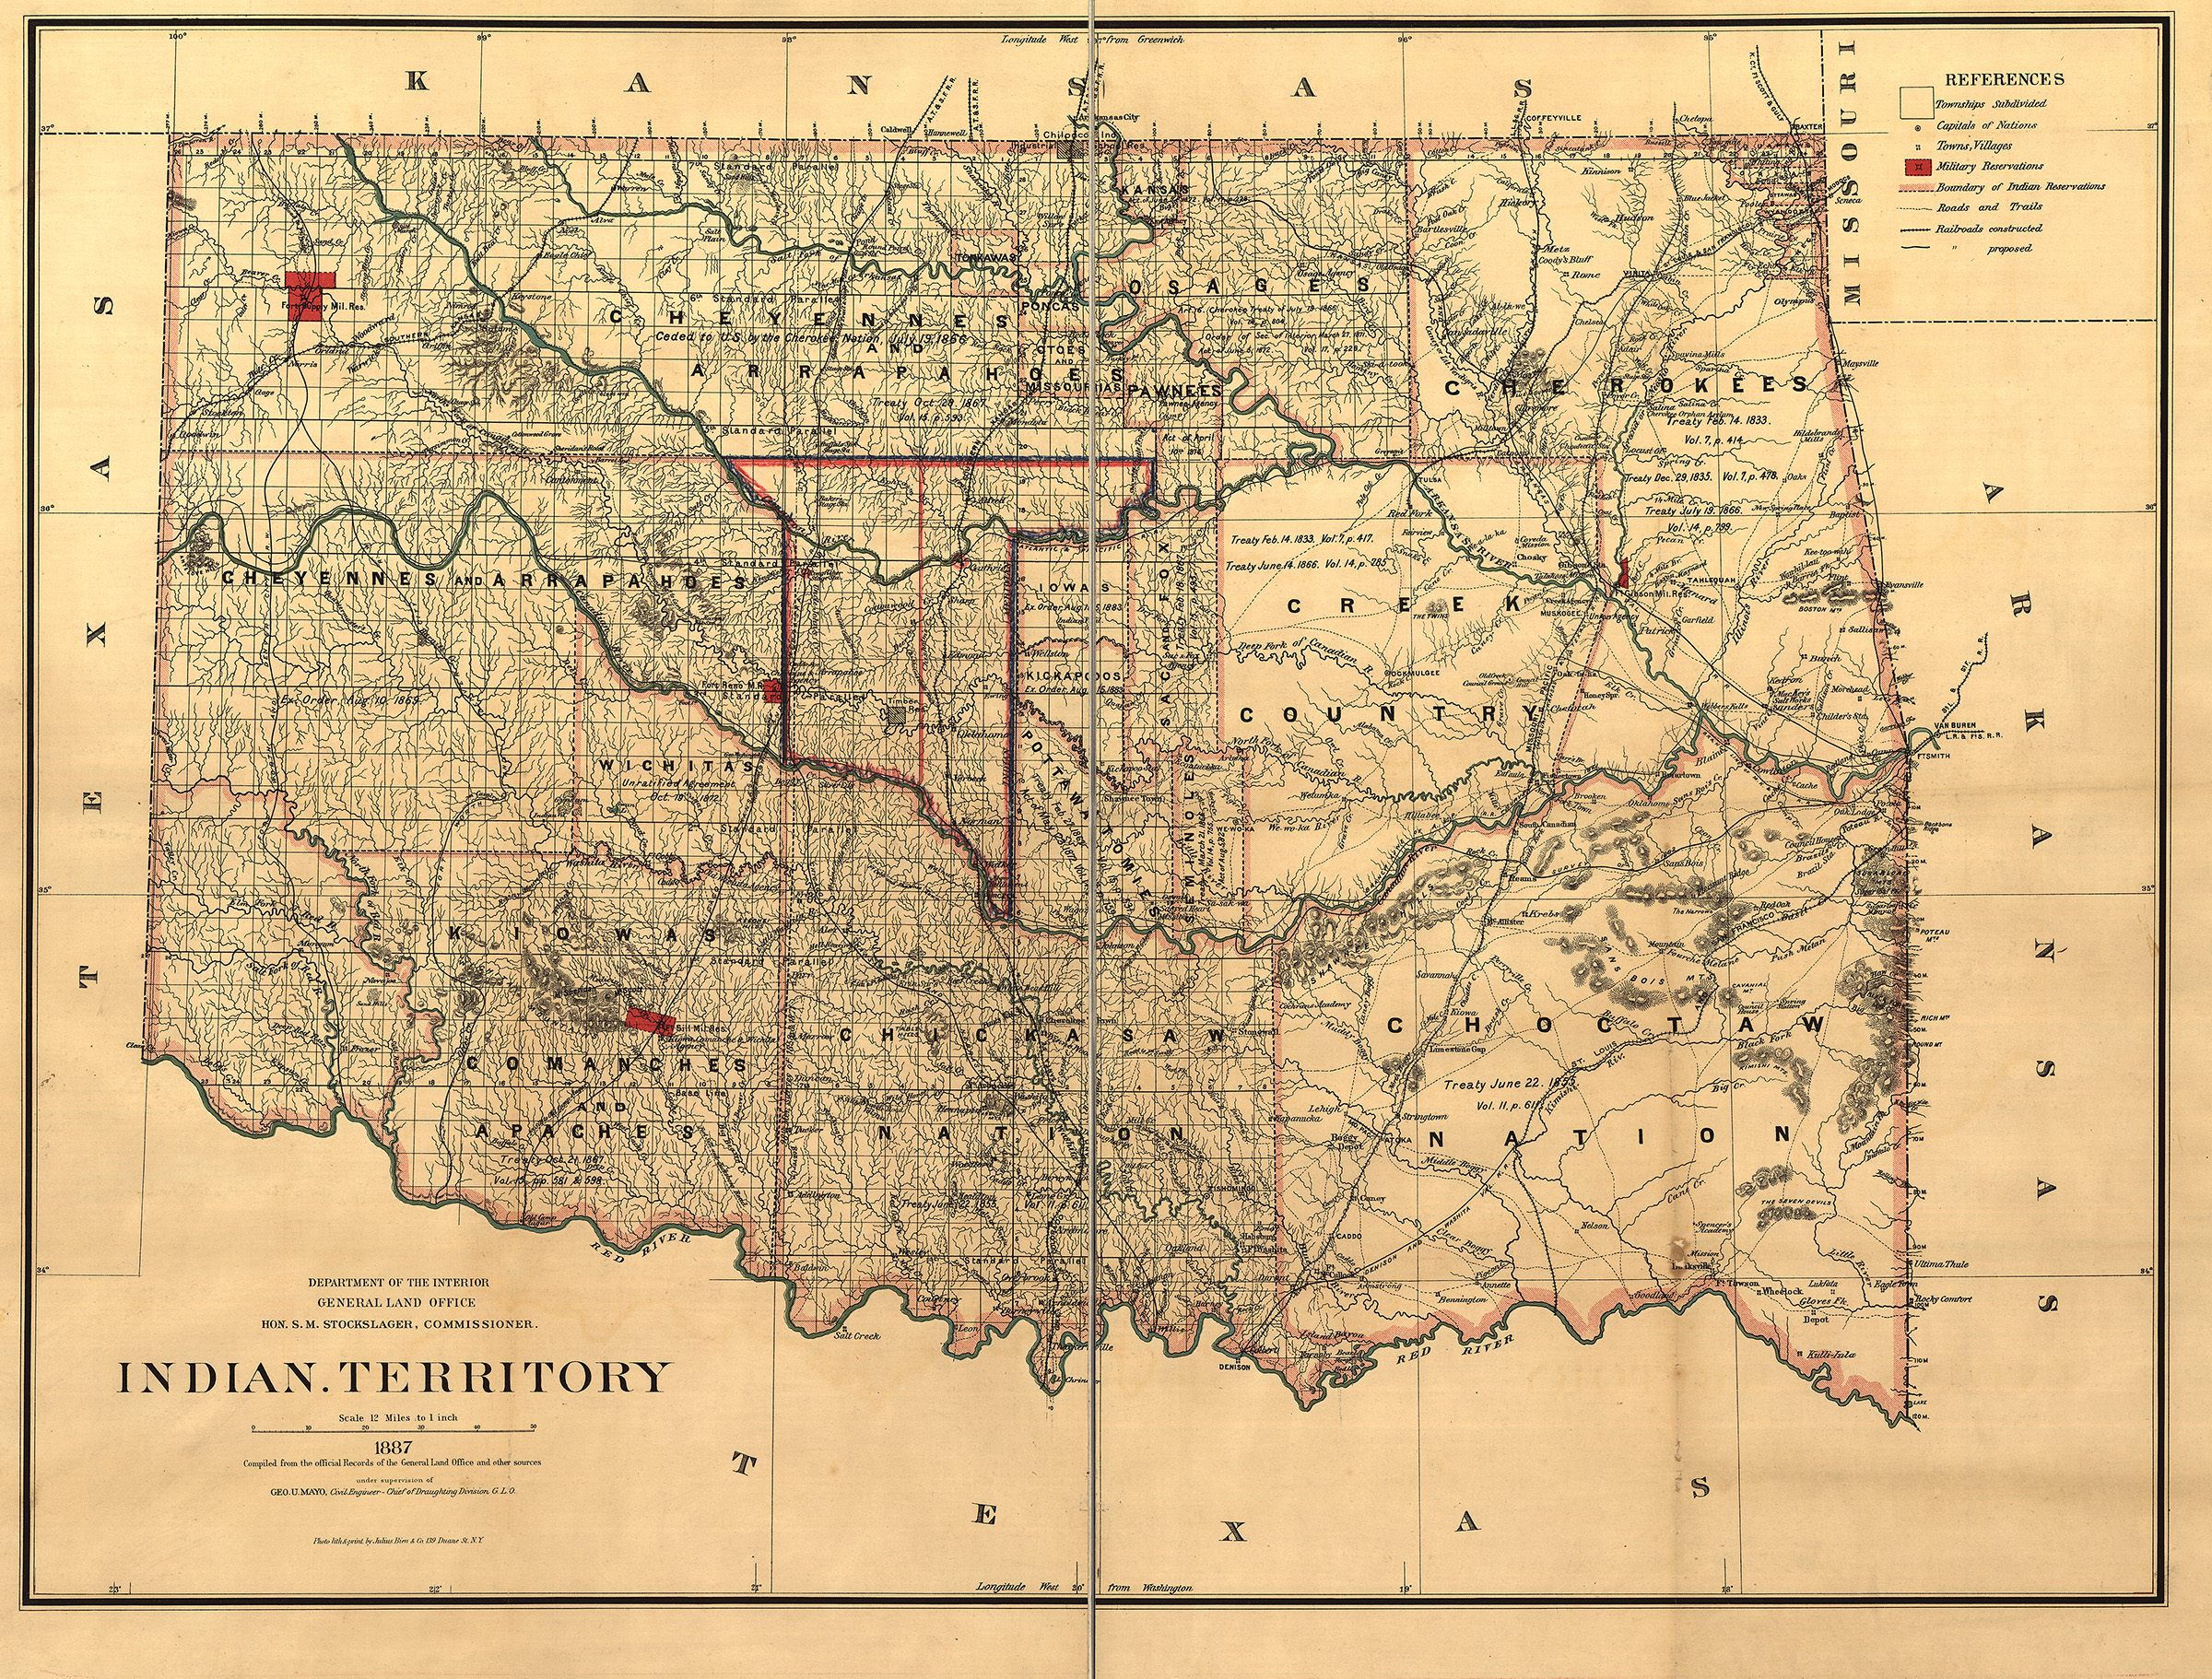 Indian Territory, Department of the Interior, 1887.